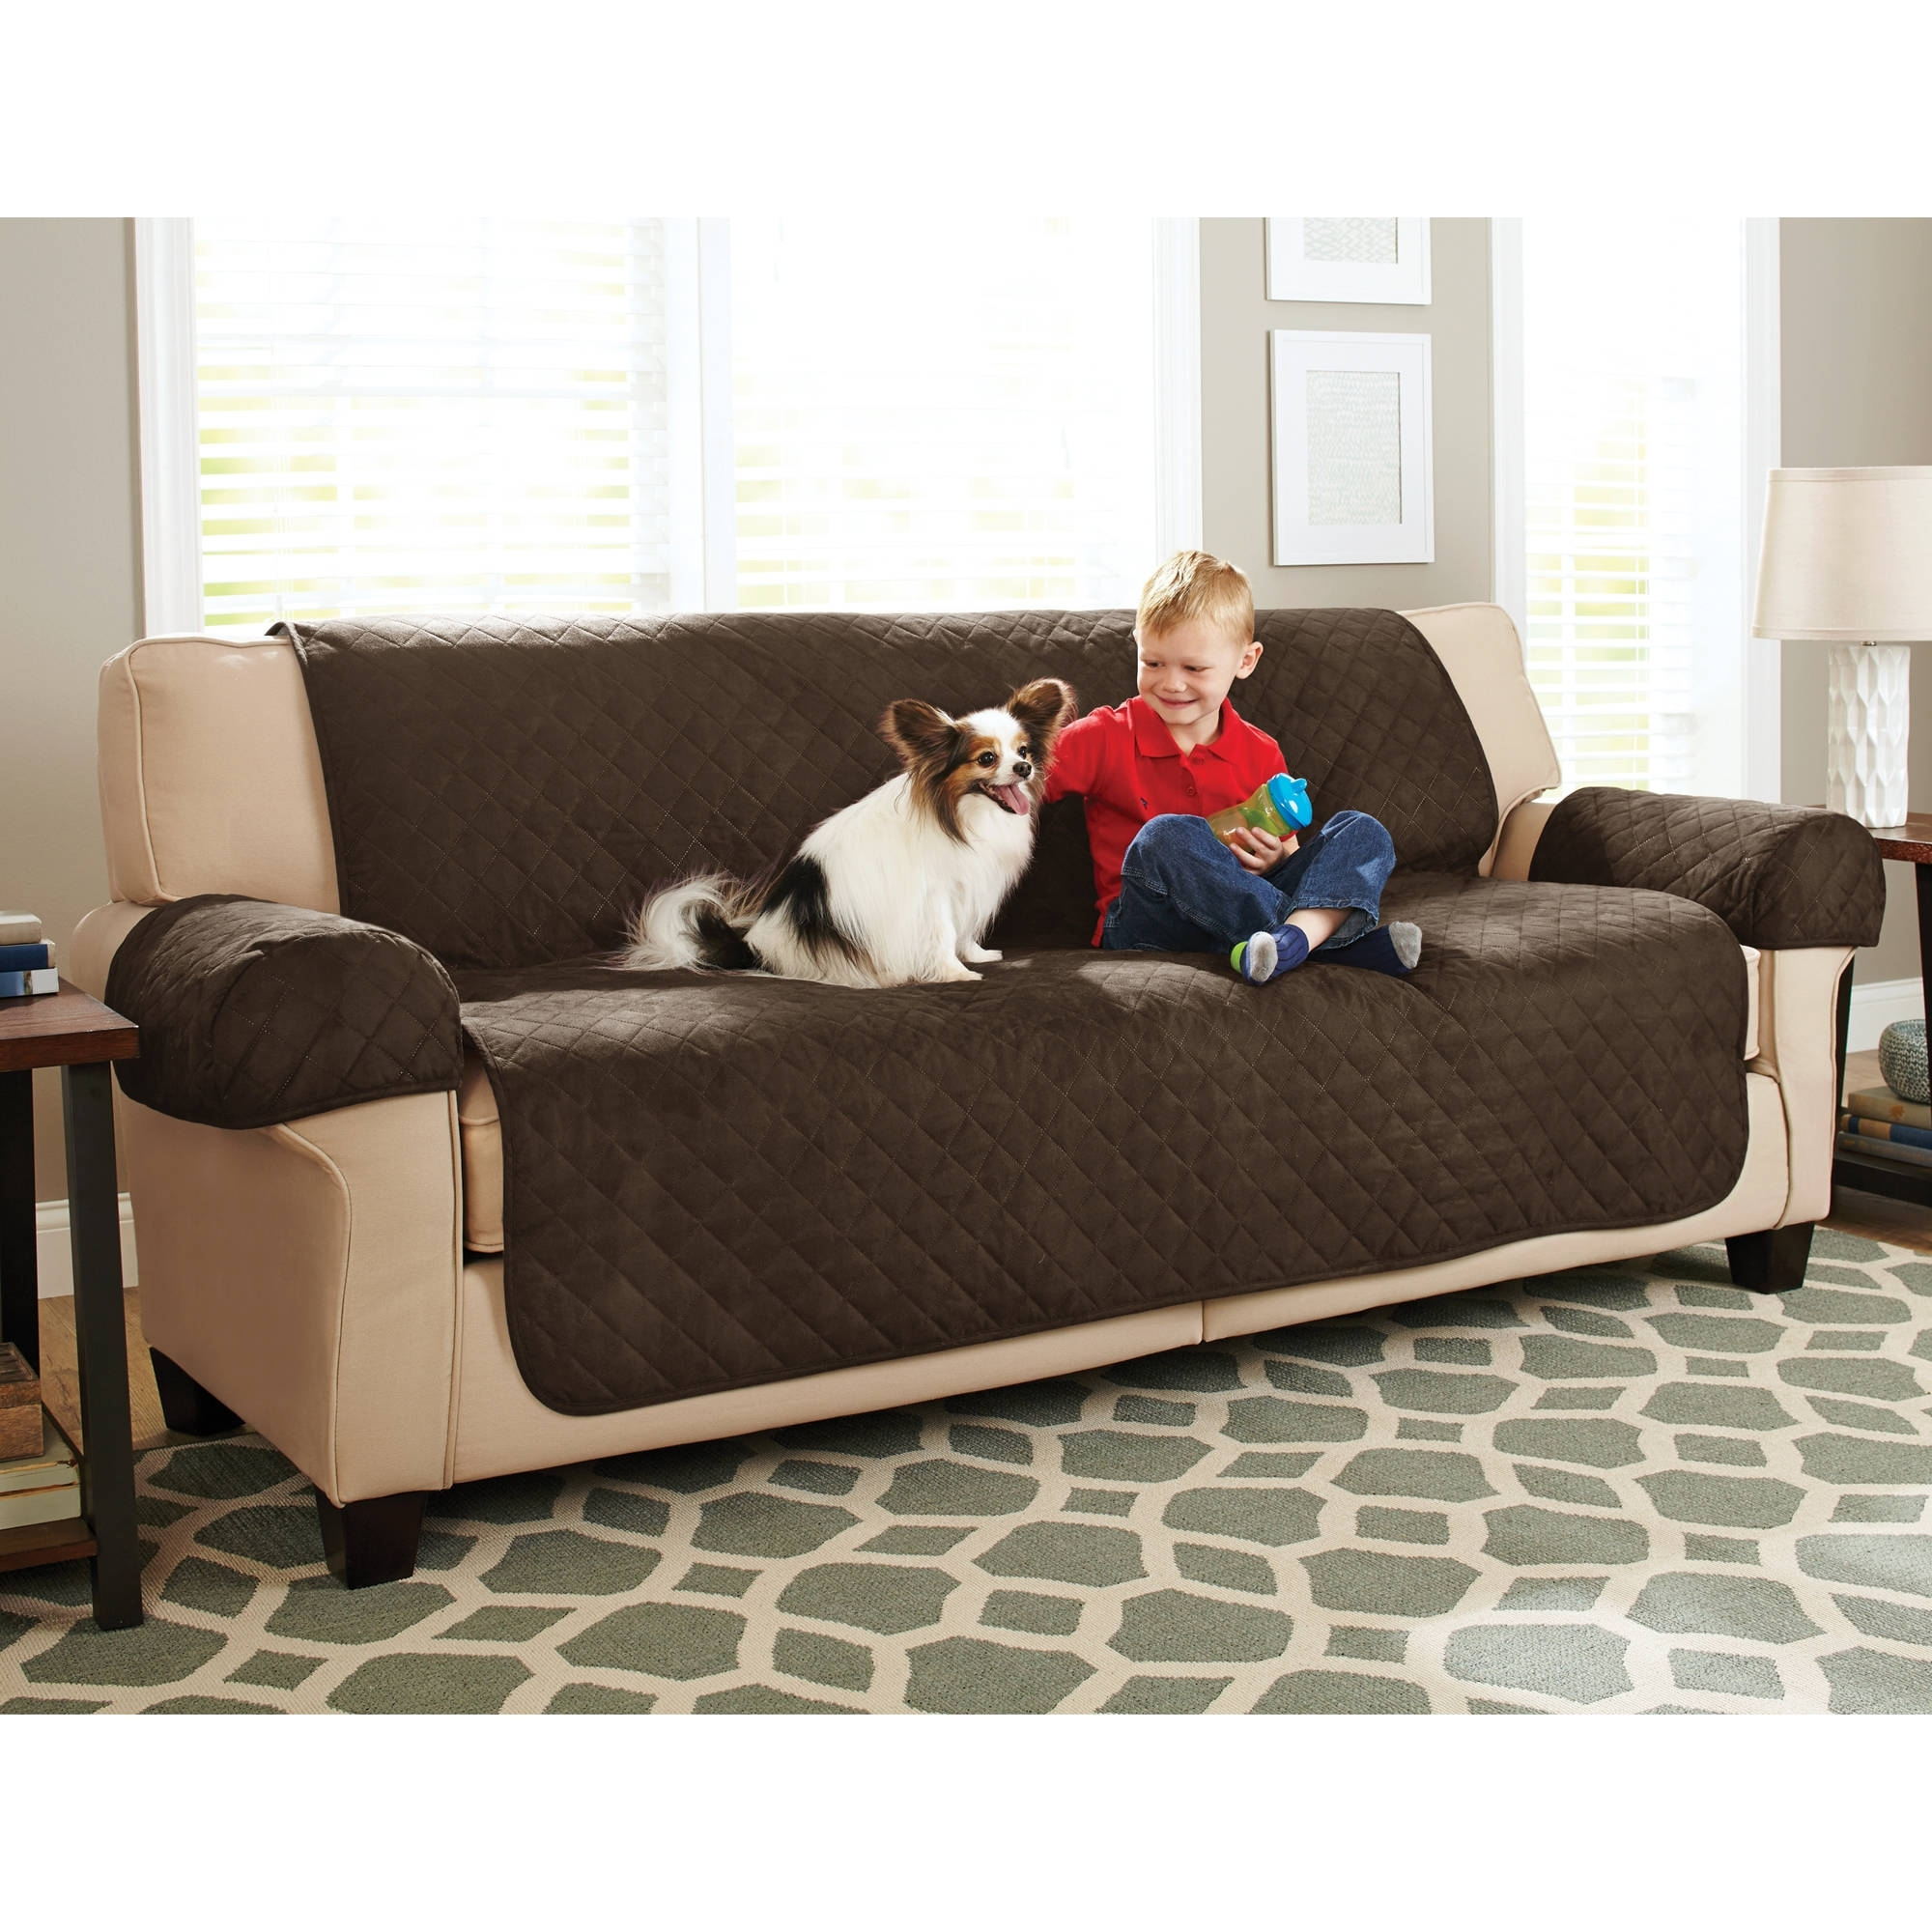 Most Recent Better Homes And Gardens Waterproof Non Slip Faux Suede Pet Inside Sofas With Washable Covers (View 7 of 15)